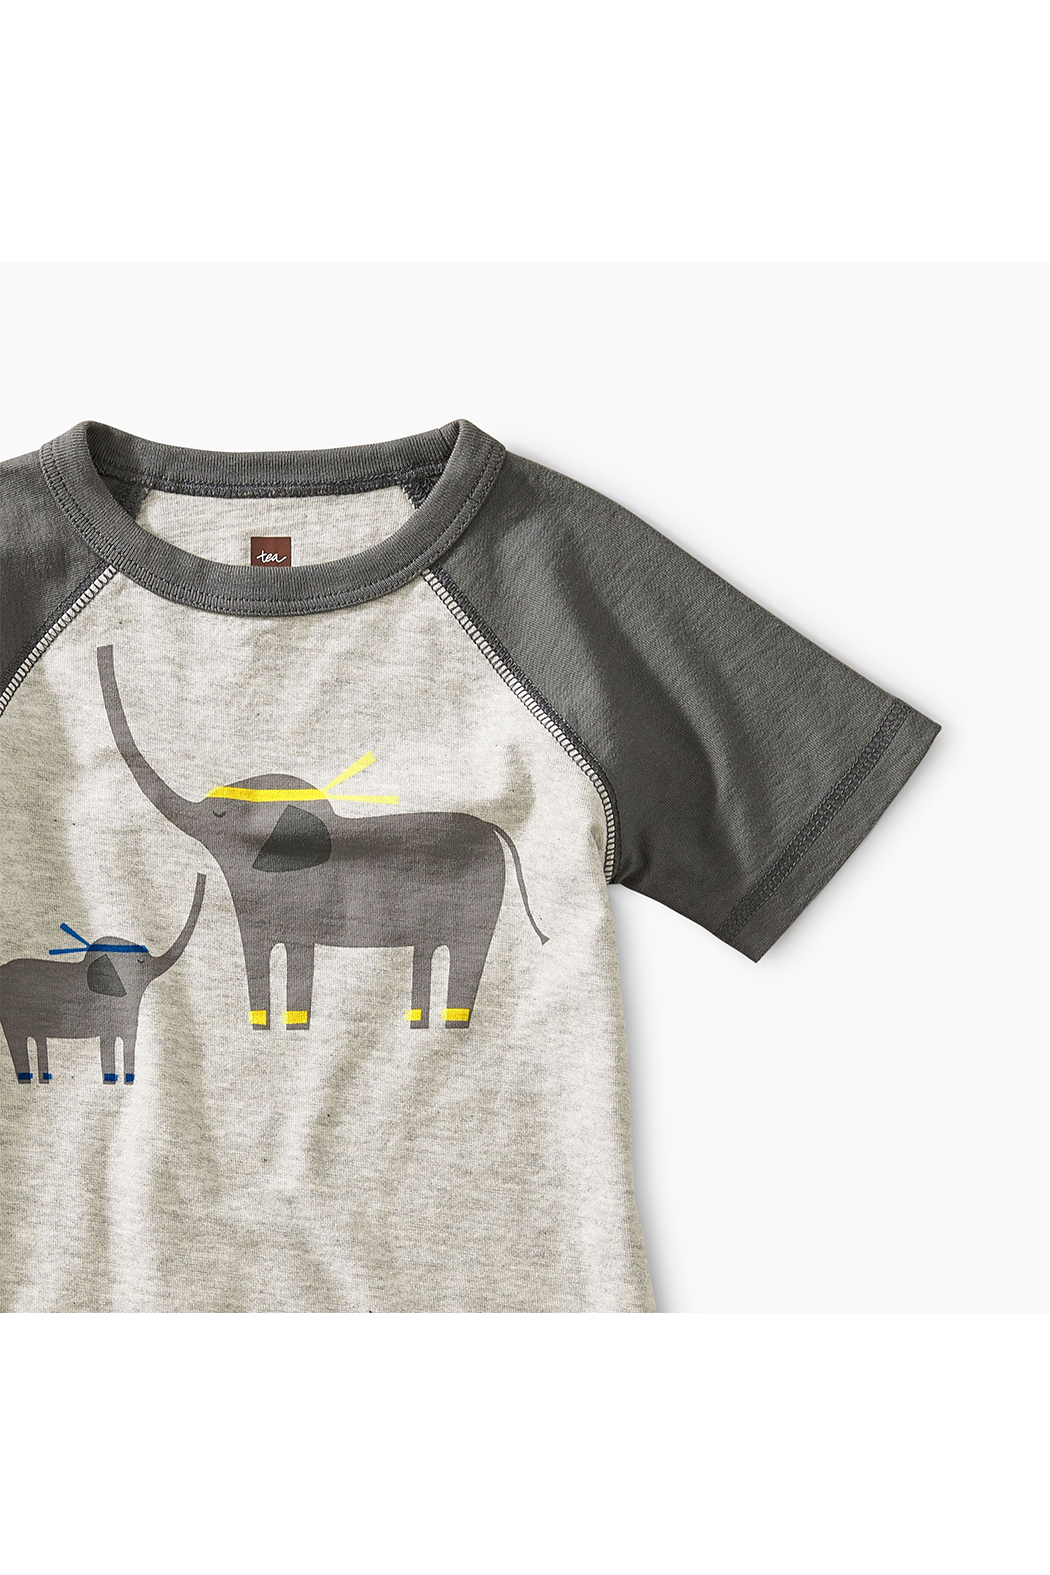 Tea Collection Martial Arts Elephant Baby Tee - Front Full Image